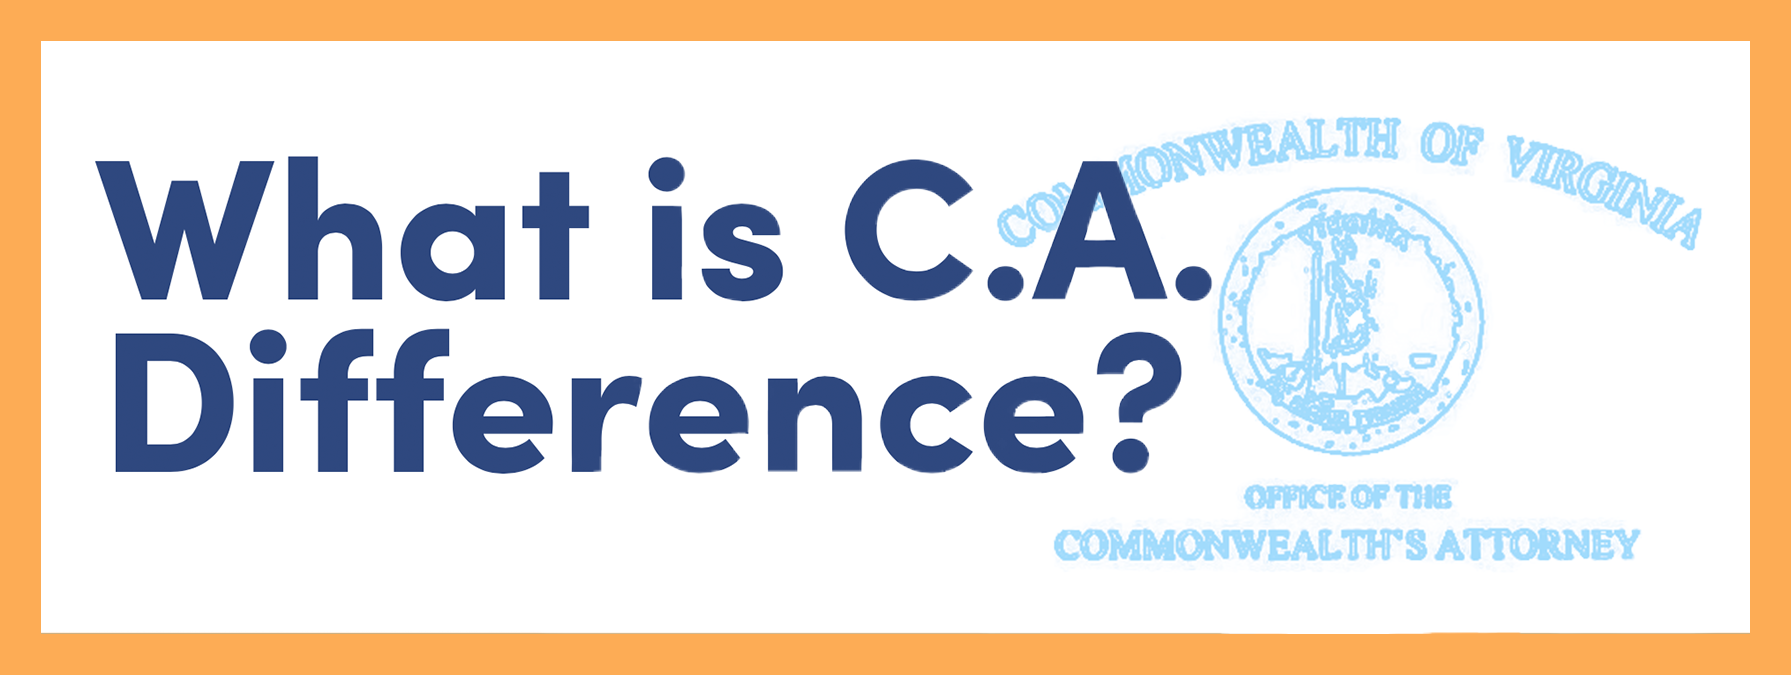 AA what is ca difference orange border 2 lines masked w letterhead.png